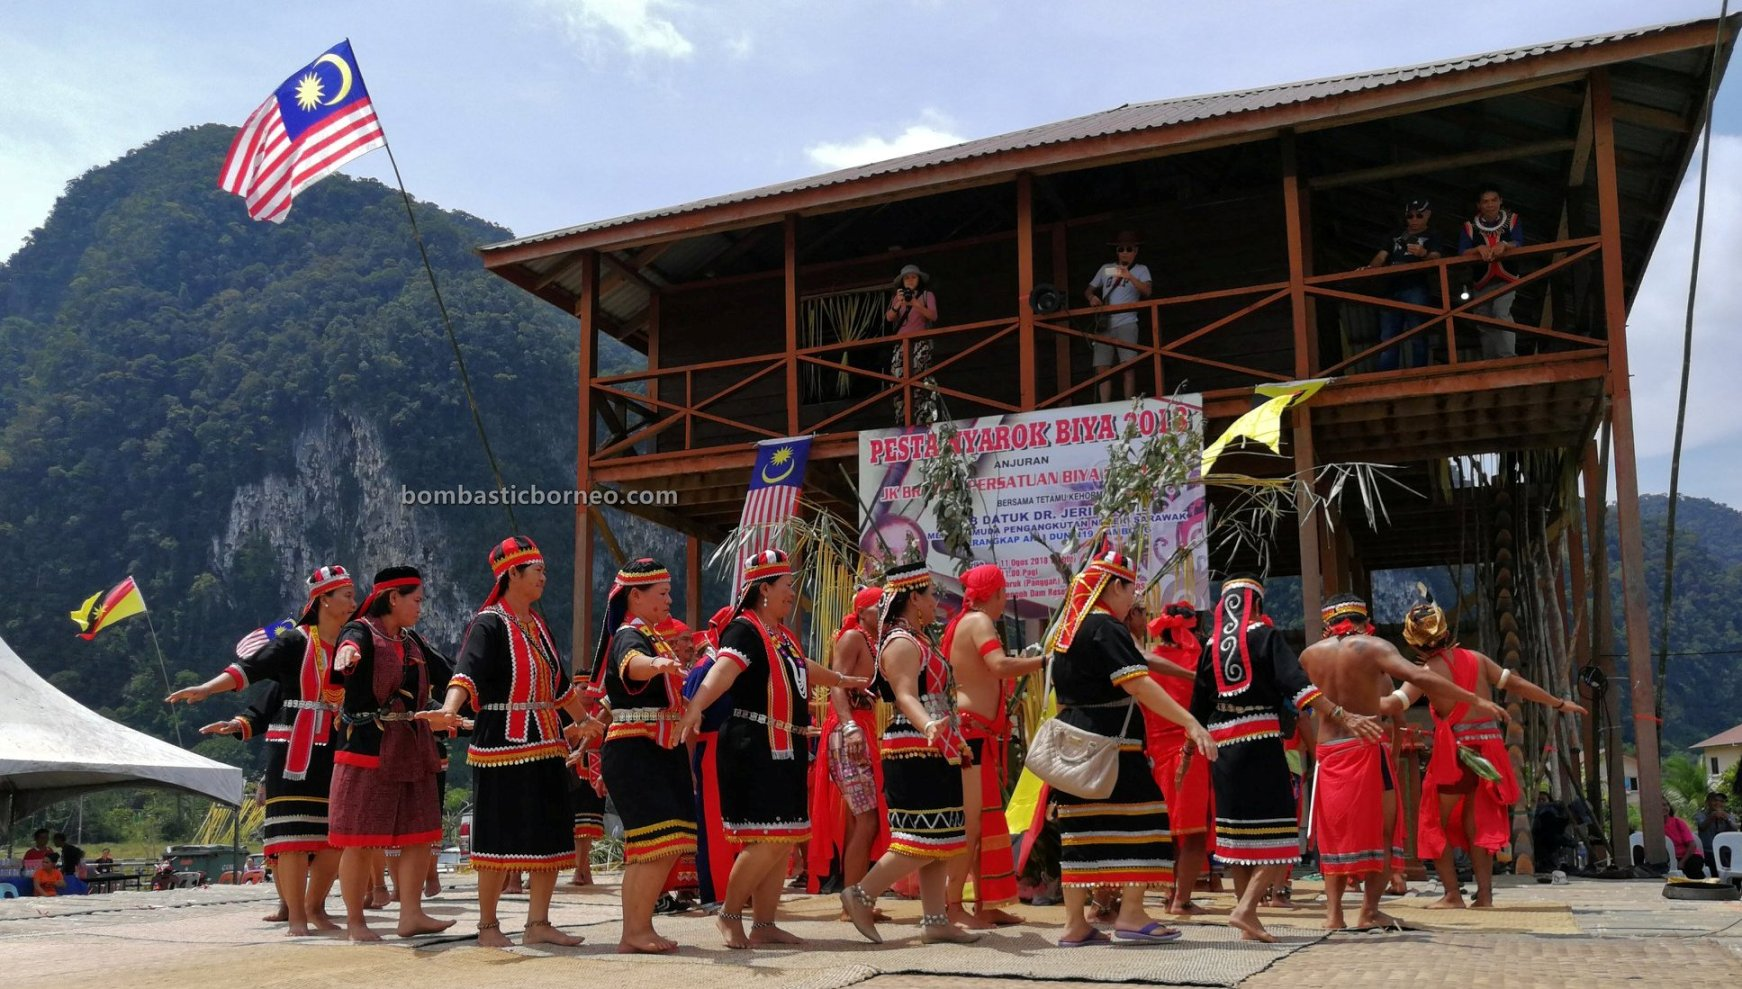 Pesta Nyarok Biya, adat, traditional, budaya, culture, dayak bidayuh, Gawai harvest festival, Kampung Semban, Borneo, Kuching, Padawan, tourist attraction, travel guide, cross border, 婆罗洲达雅丰收节日, 砂拉越比达友文化,